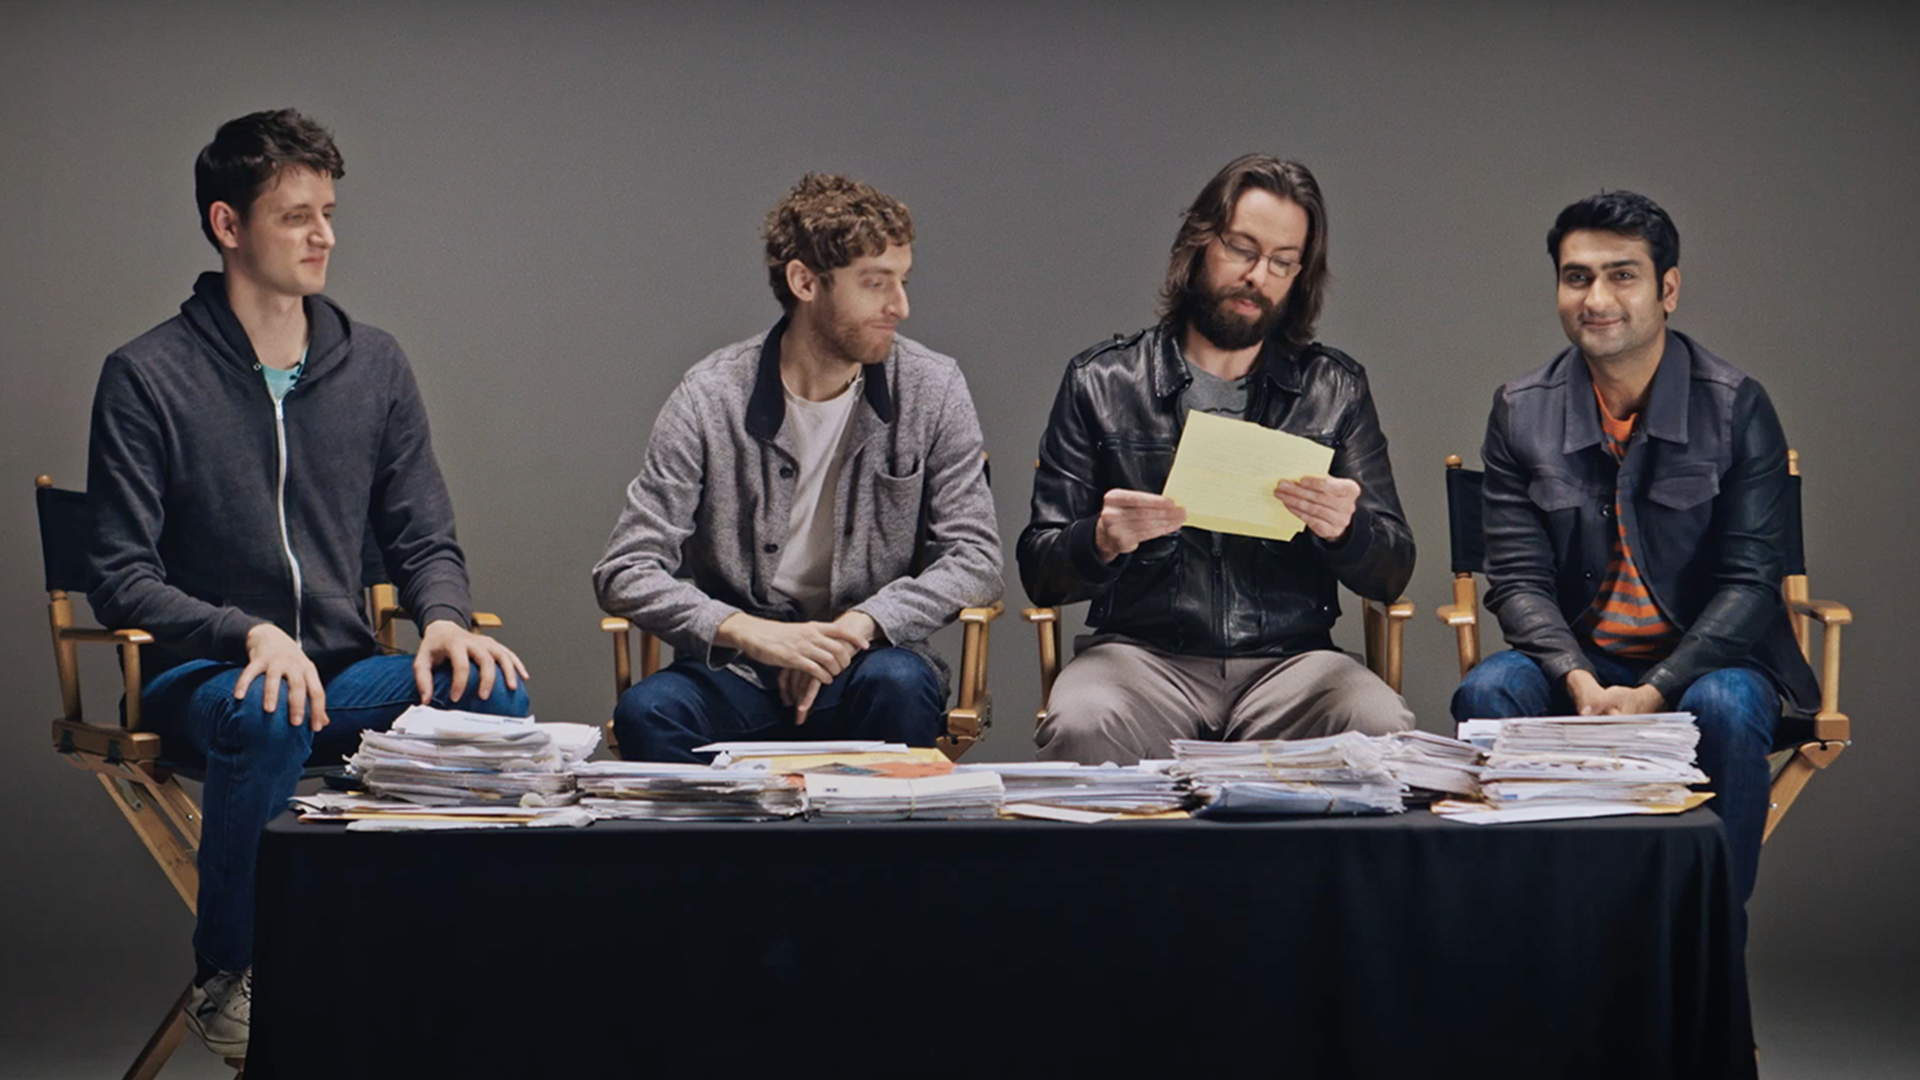 The Cast Of Silicon Valley Reads Fan Mail Funny Or Die